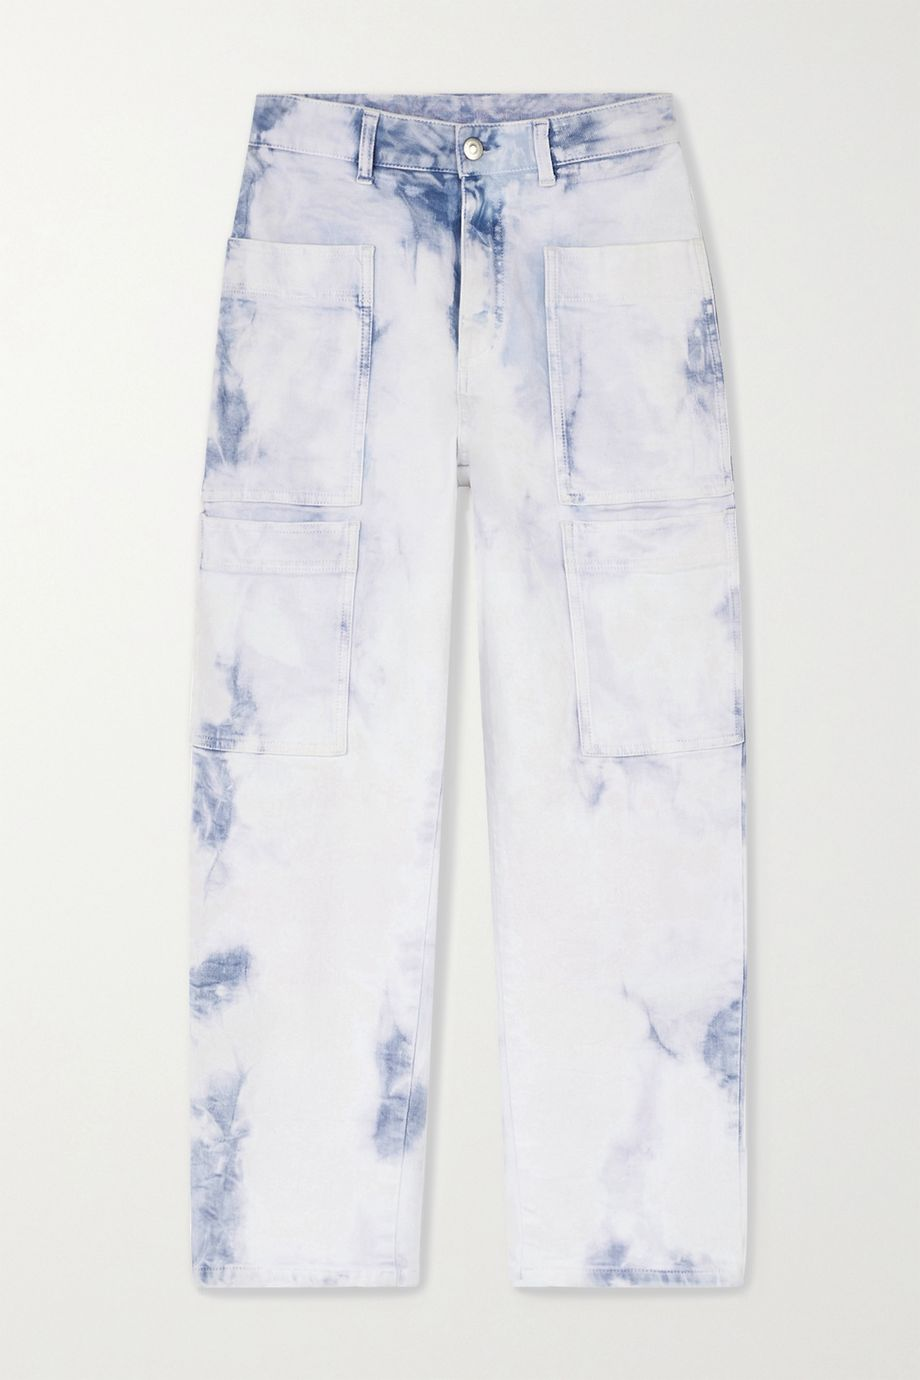 Stella McCartney Acid-wash boyfriend jeans